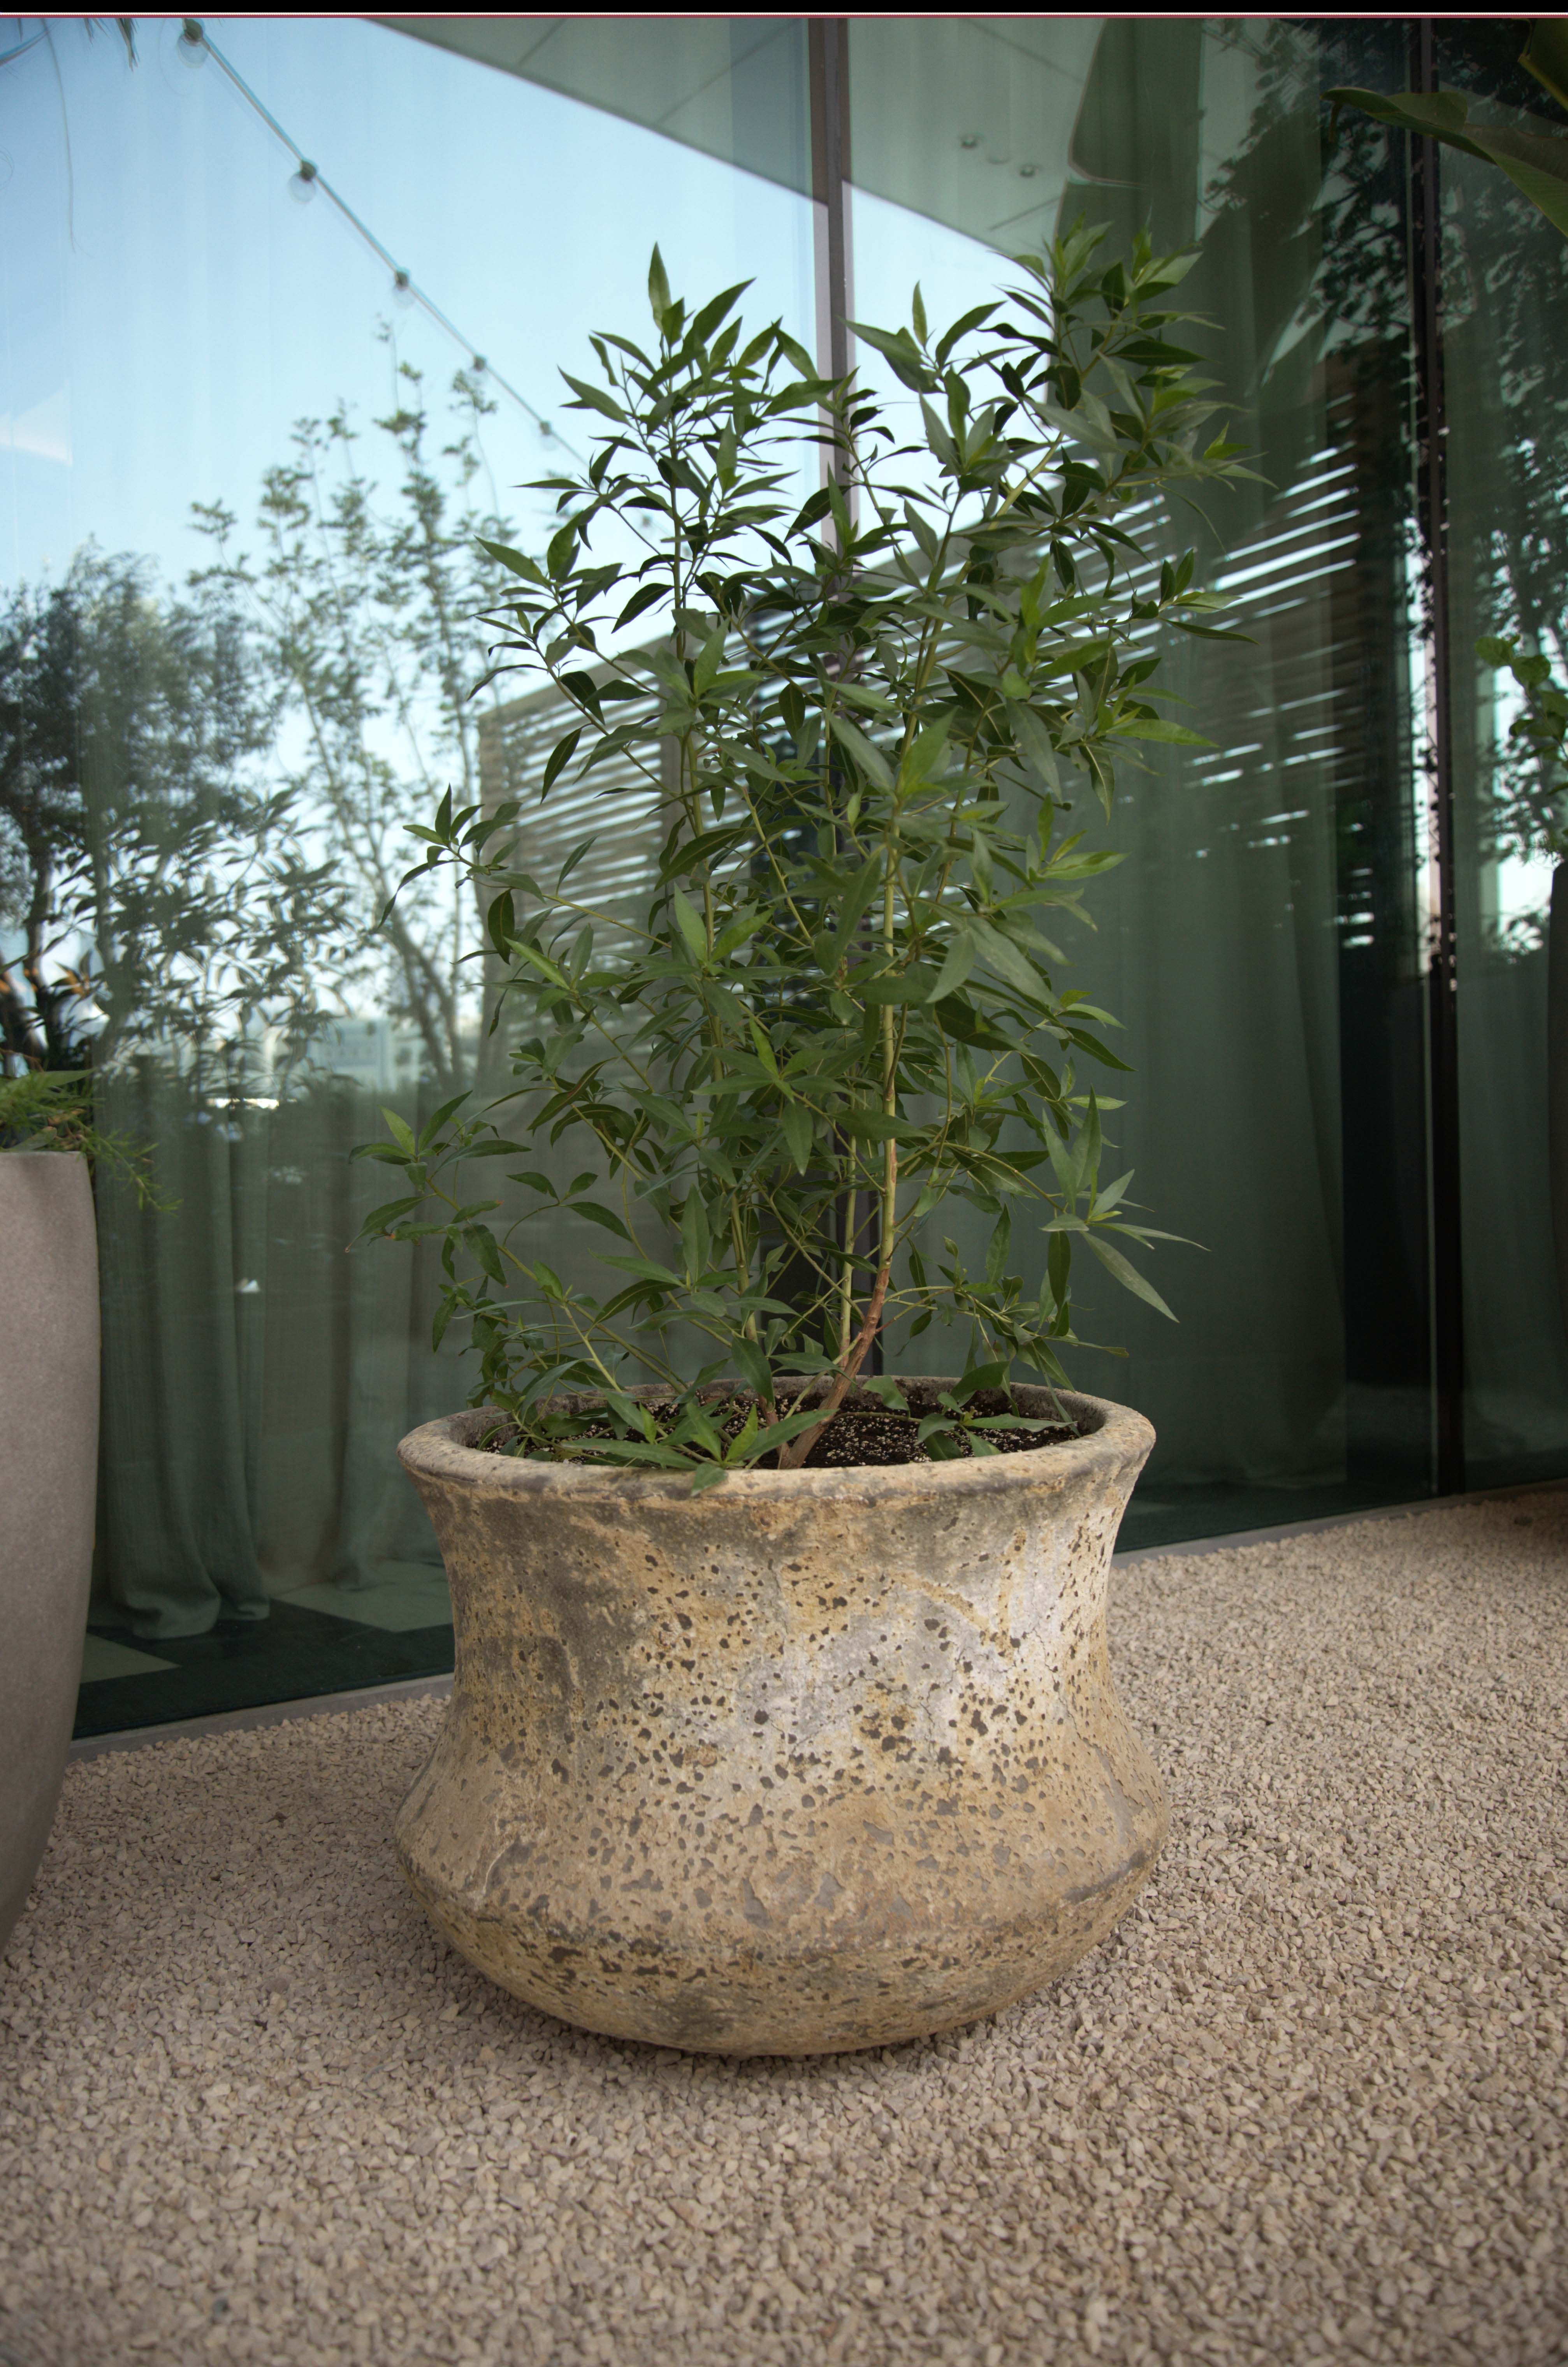 Bring serenity to your Gardens with Plants & Planters